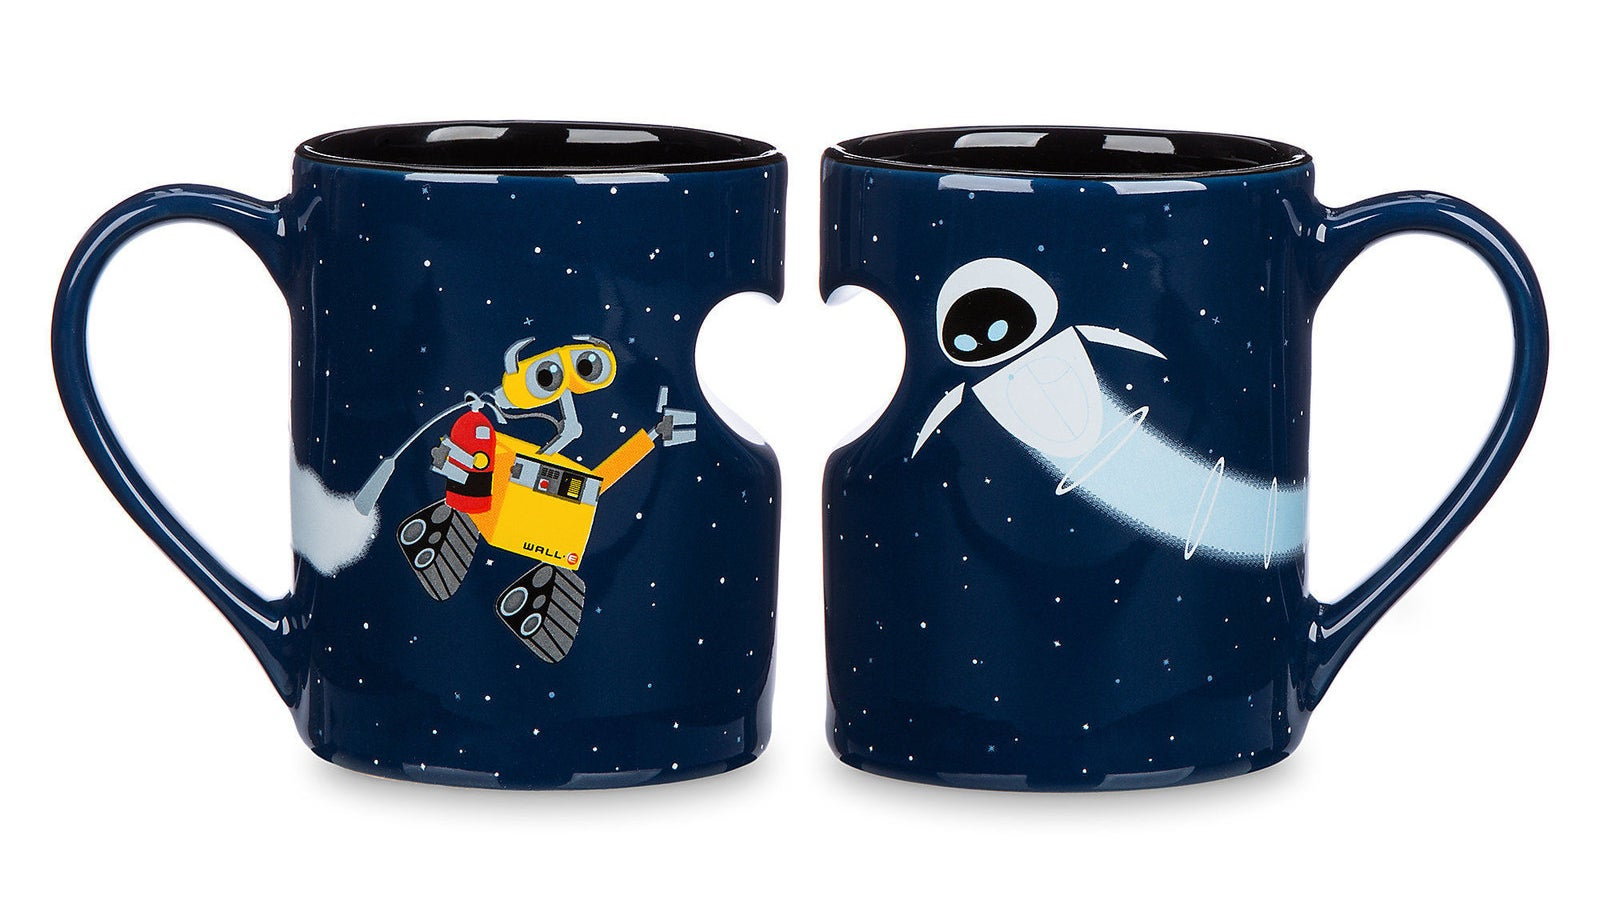 two mugs next to each other with half heart chunks removed from both